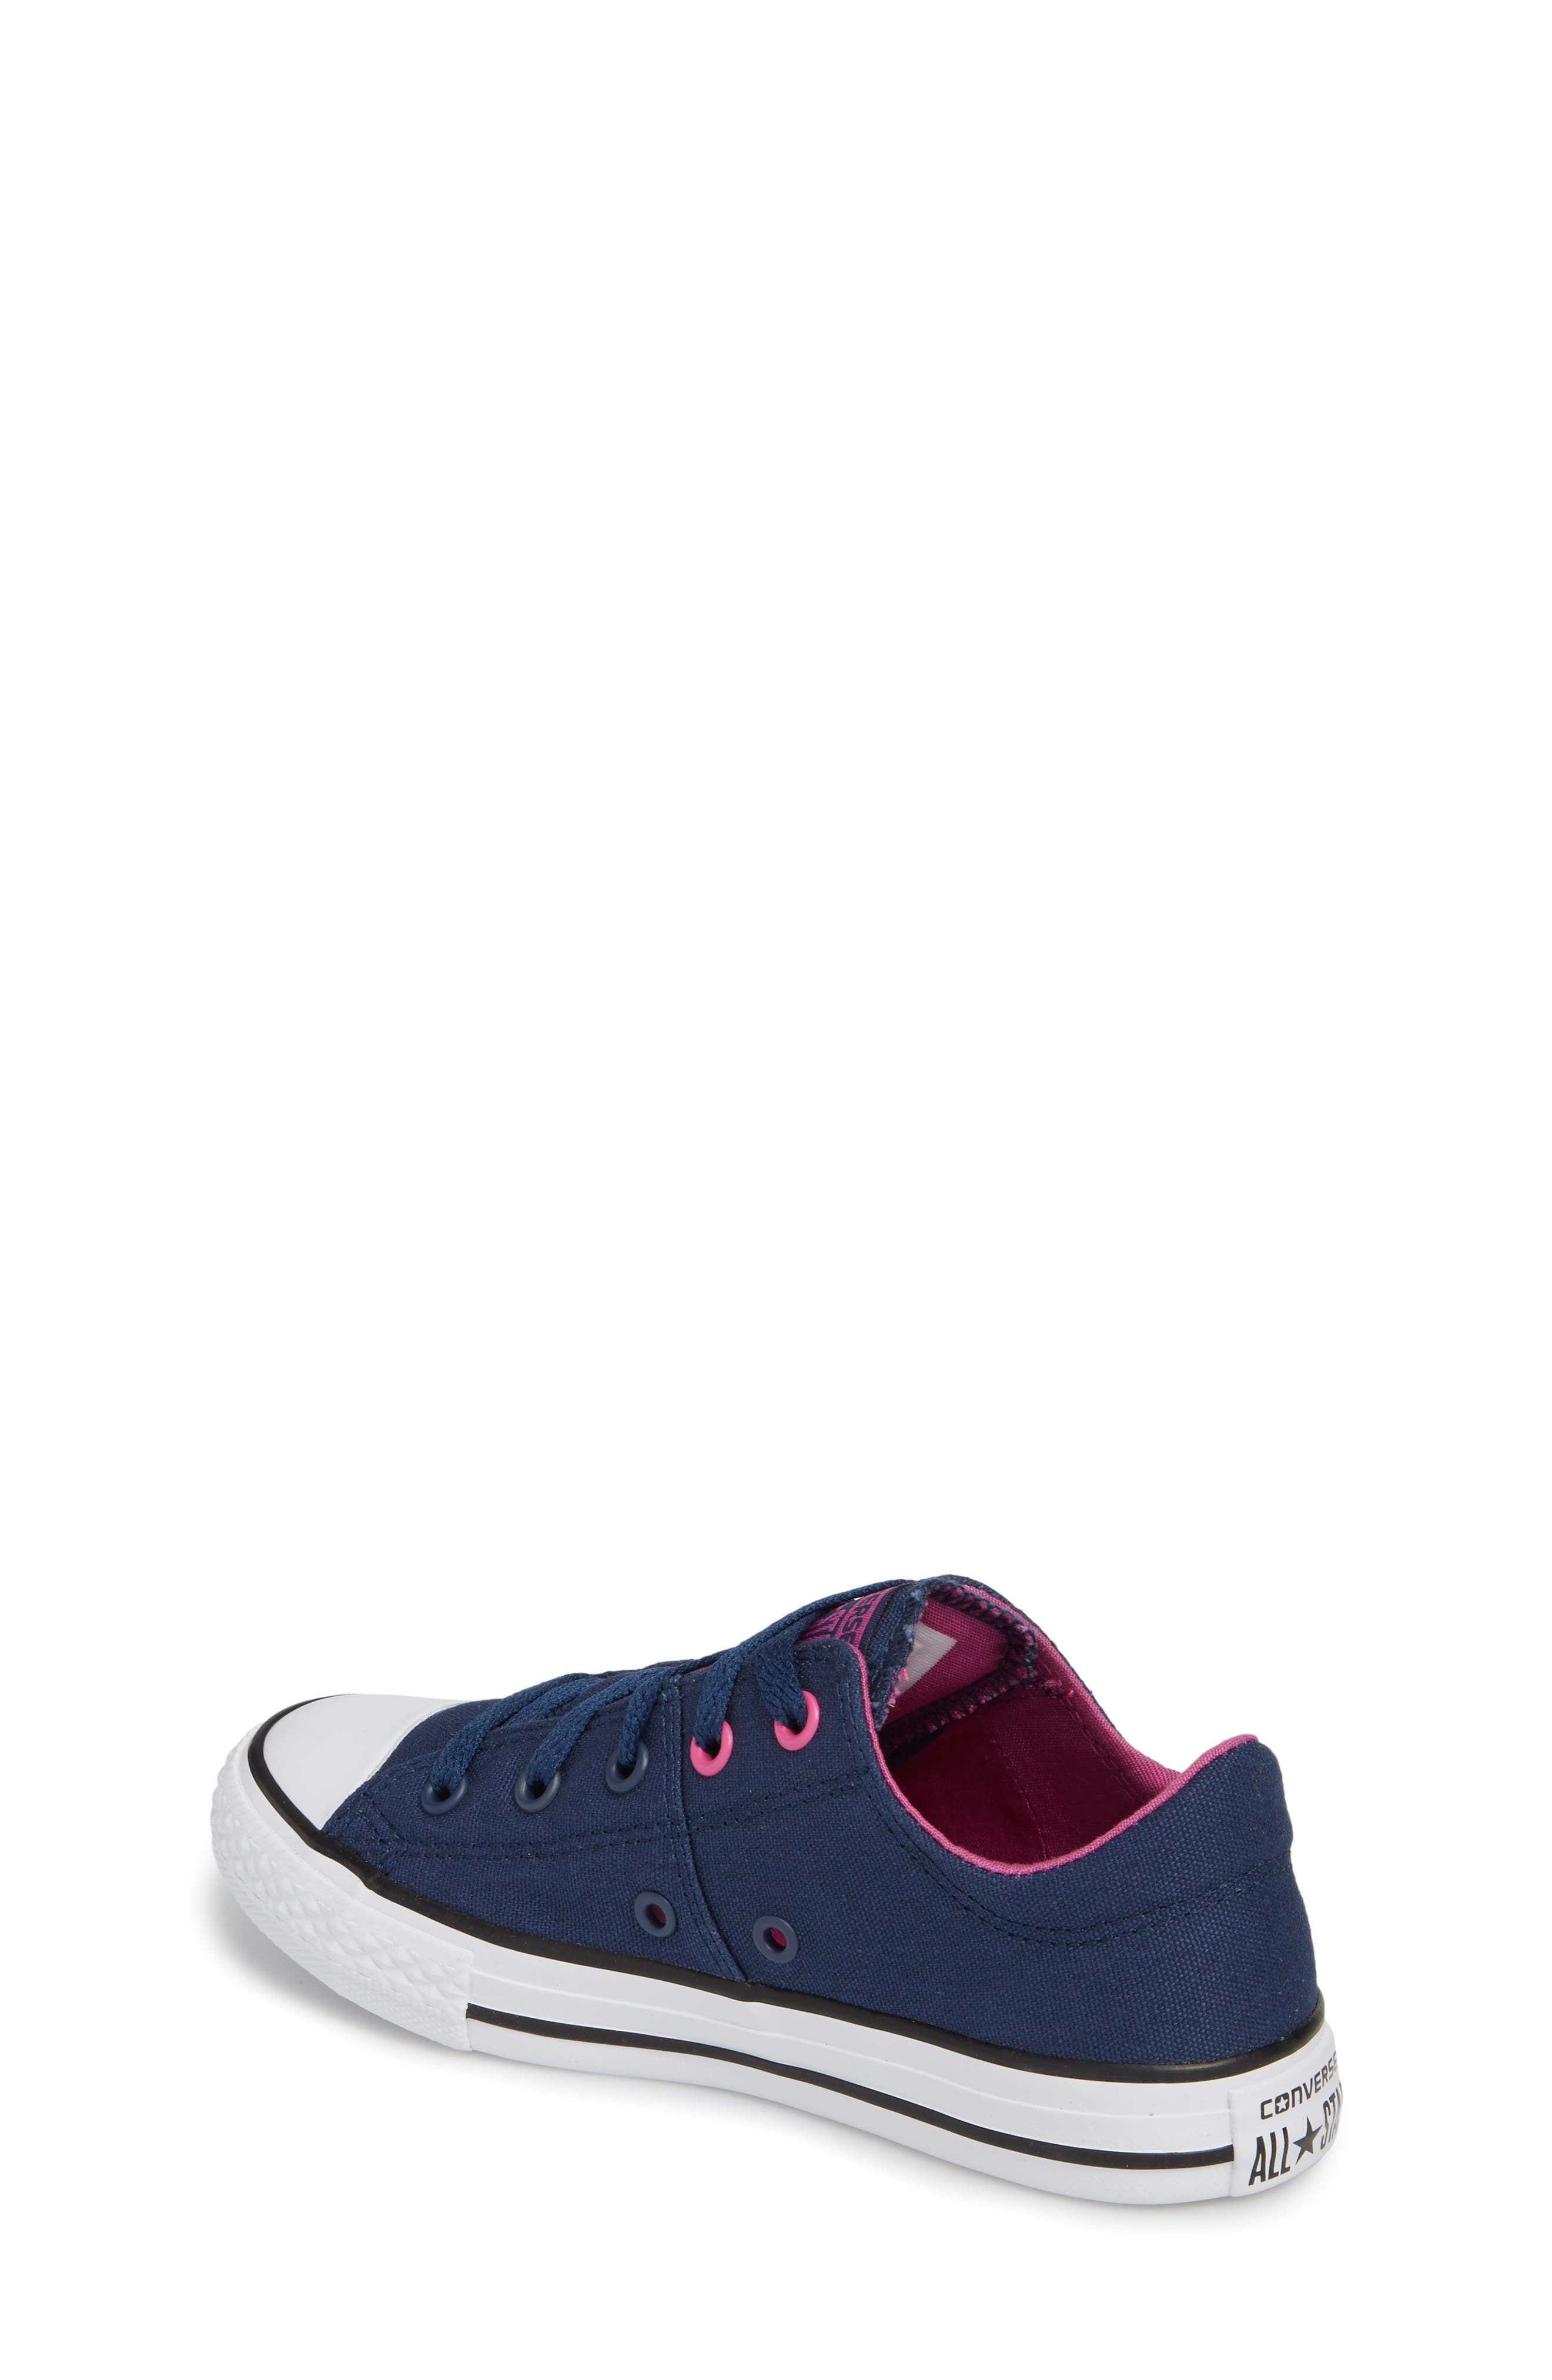 Chuck Taylor<sup>®</sup> All Star<sup>®</sup> Madison Low Top Sneaker,                             Alternate thumbnail 8, color,